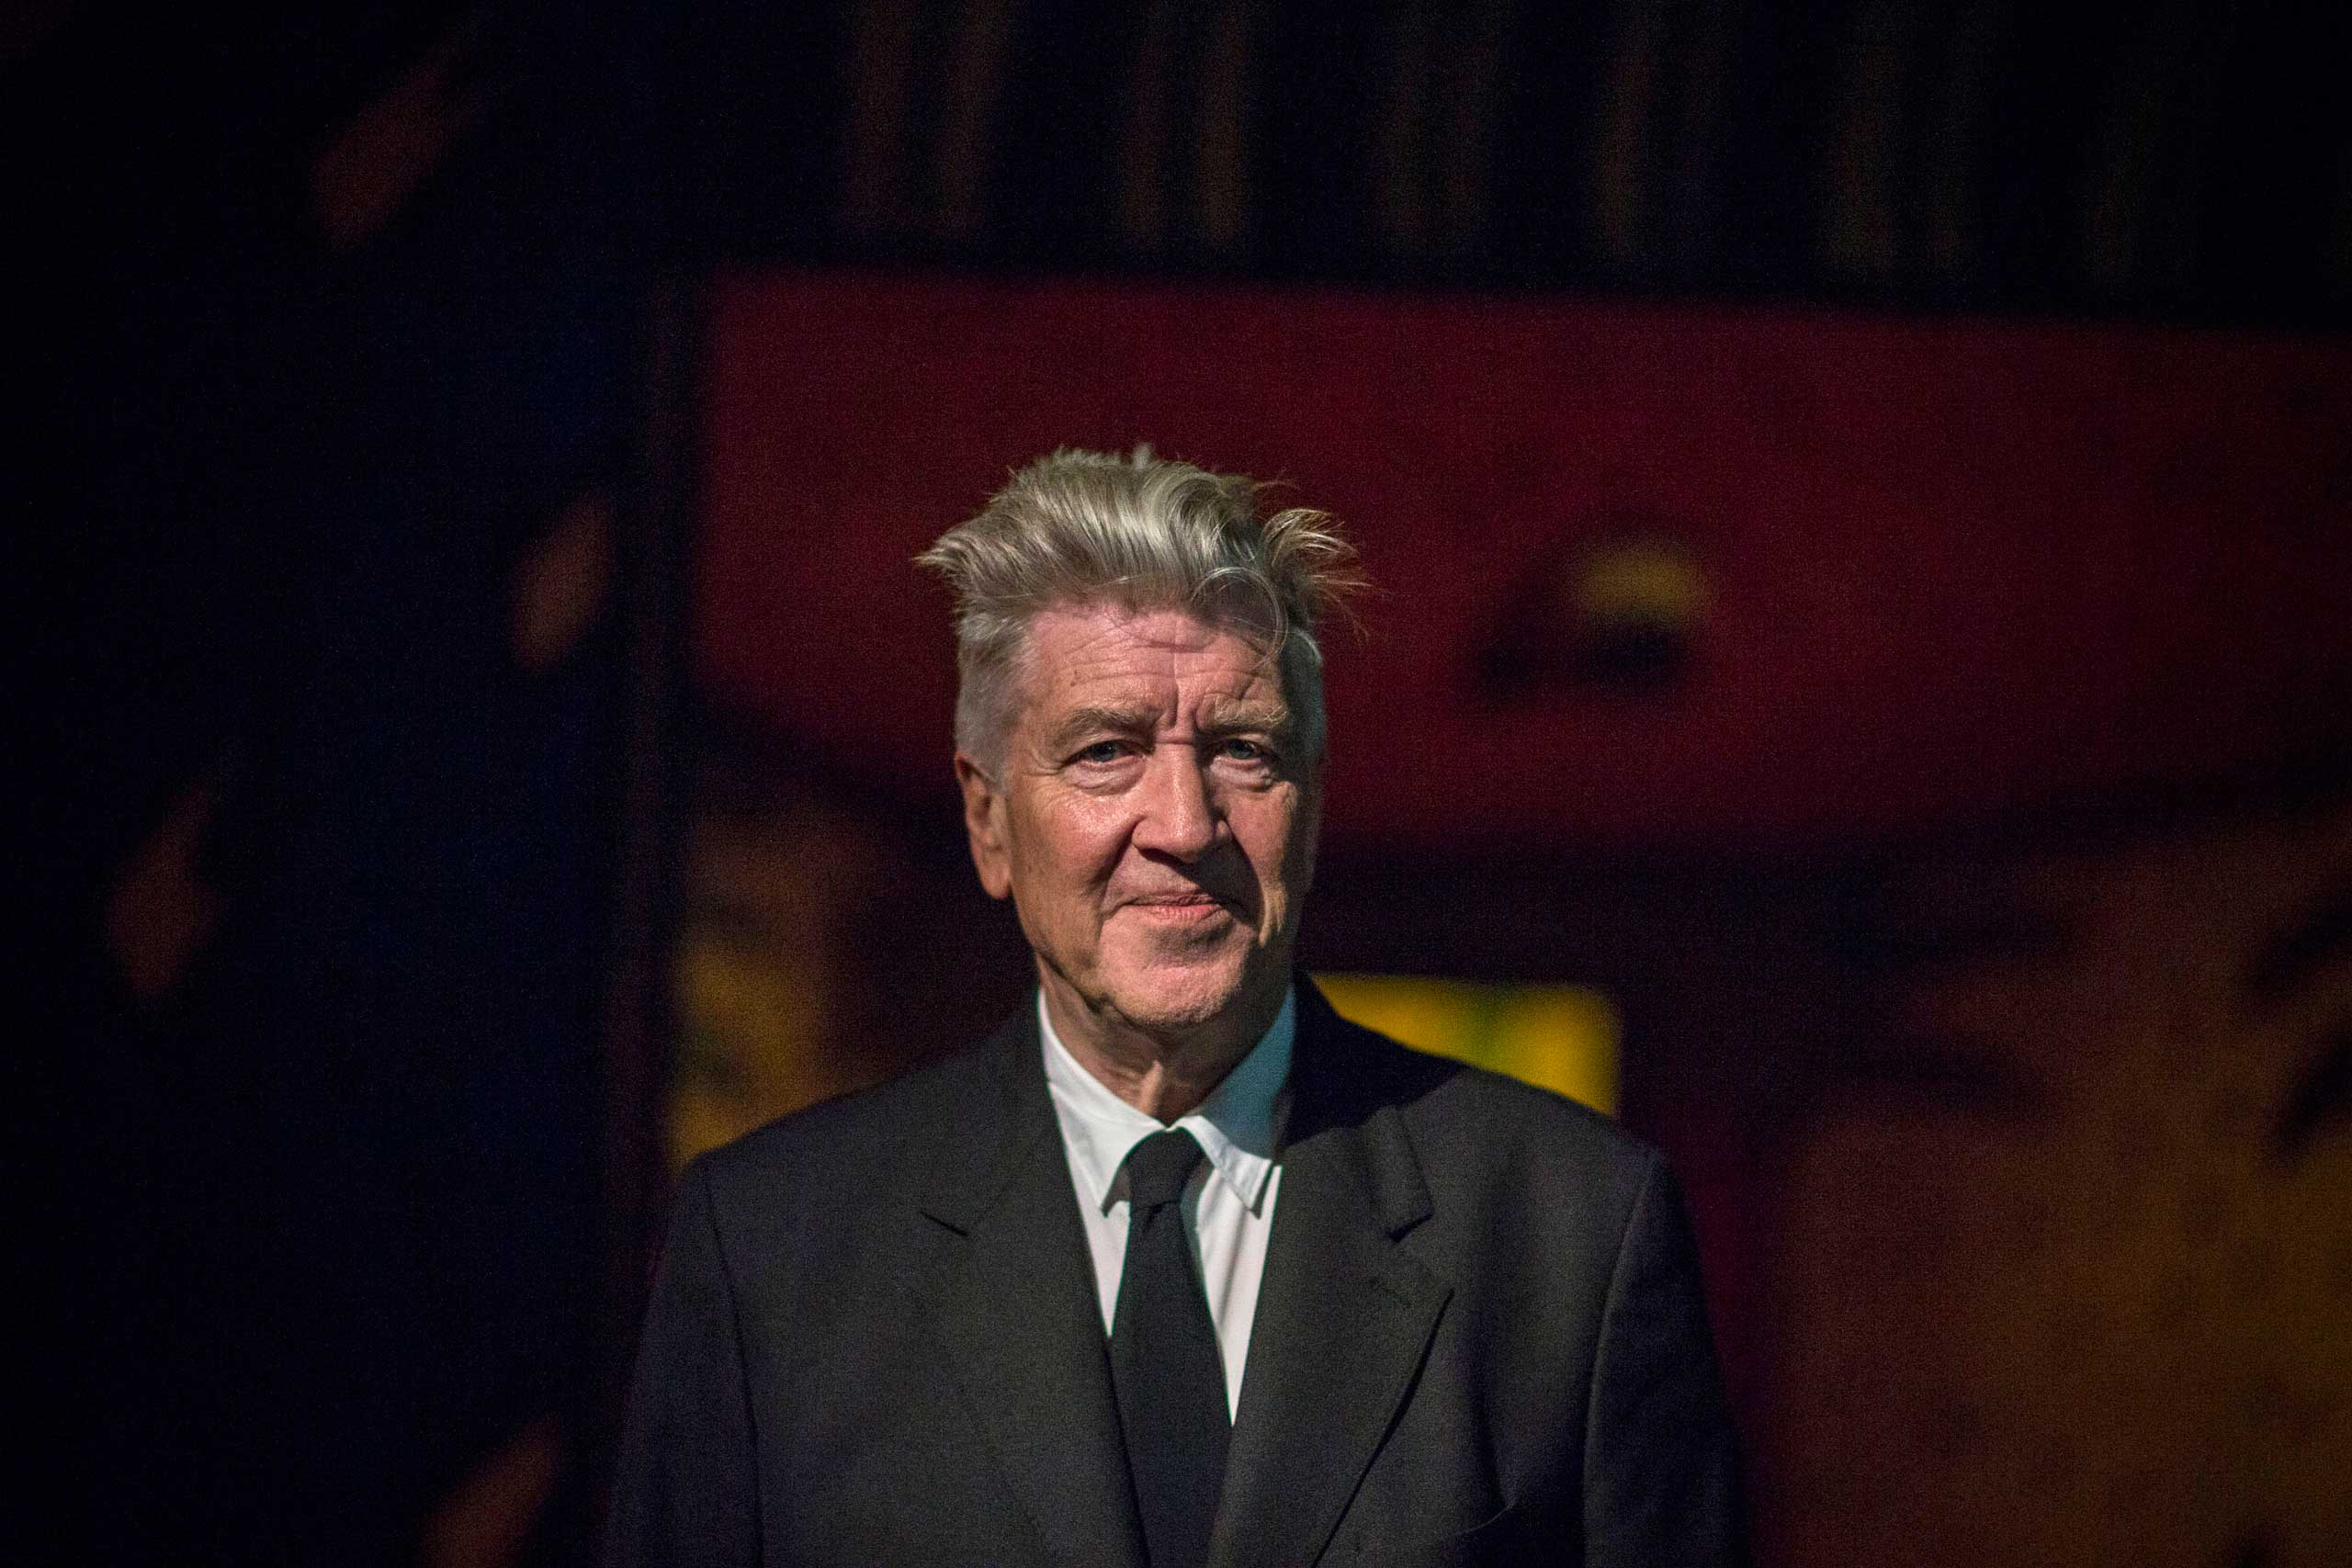 David Lynch at the opening of his exhibition: Between Two Worlds at Gallery of Modern Art (GOMA) in Brisbane, Australia, on Mar. 13, 2015.